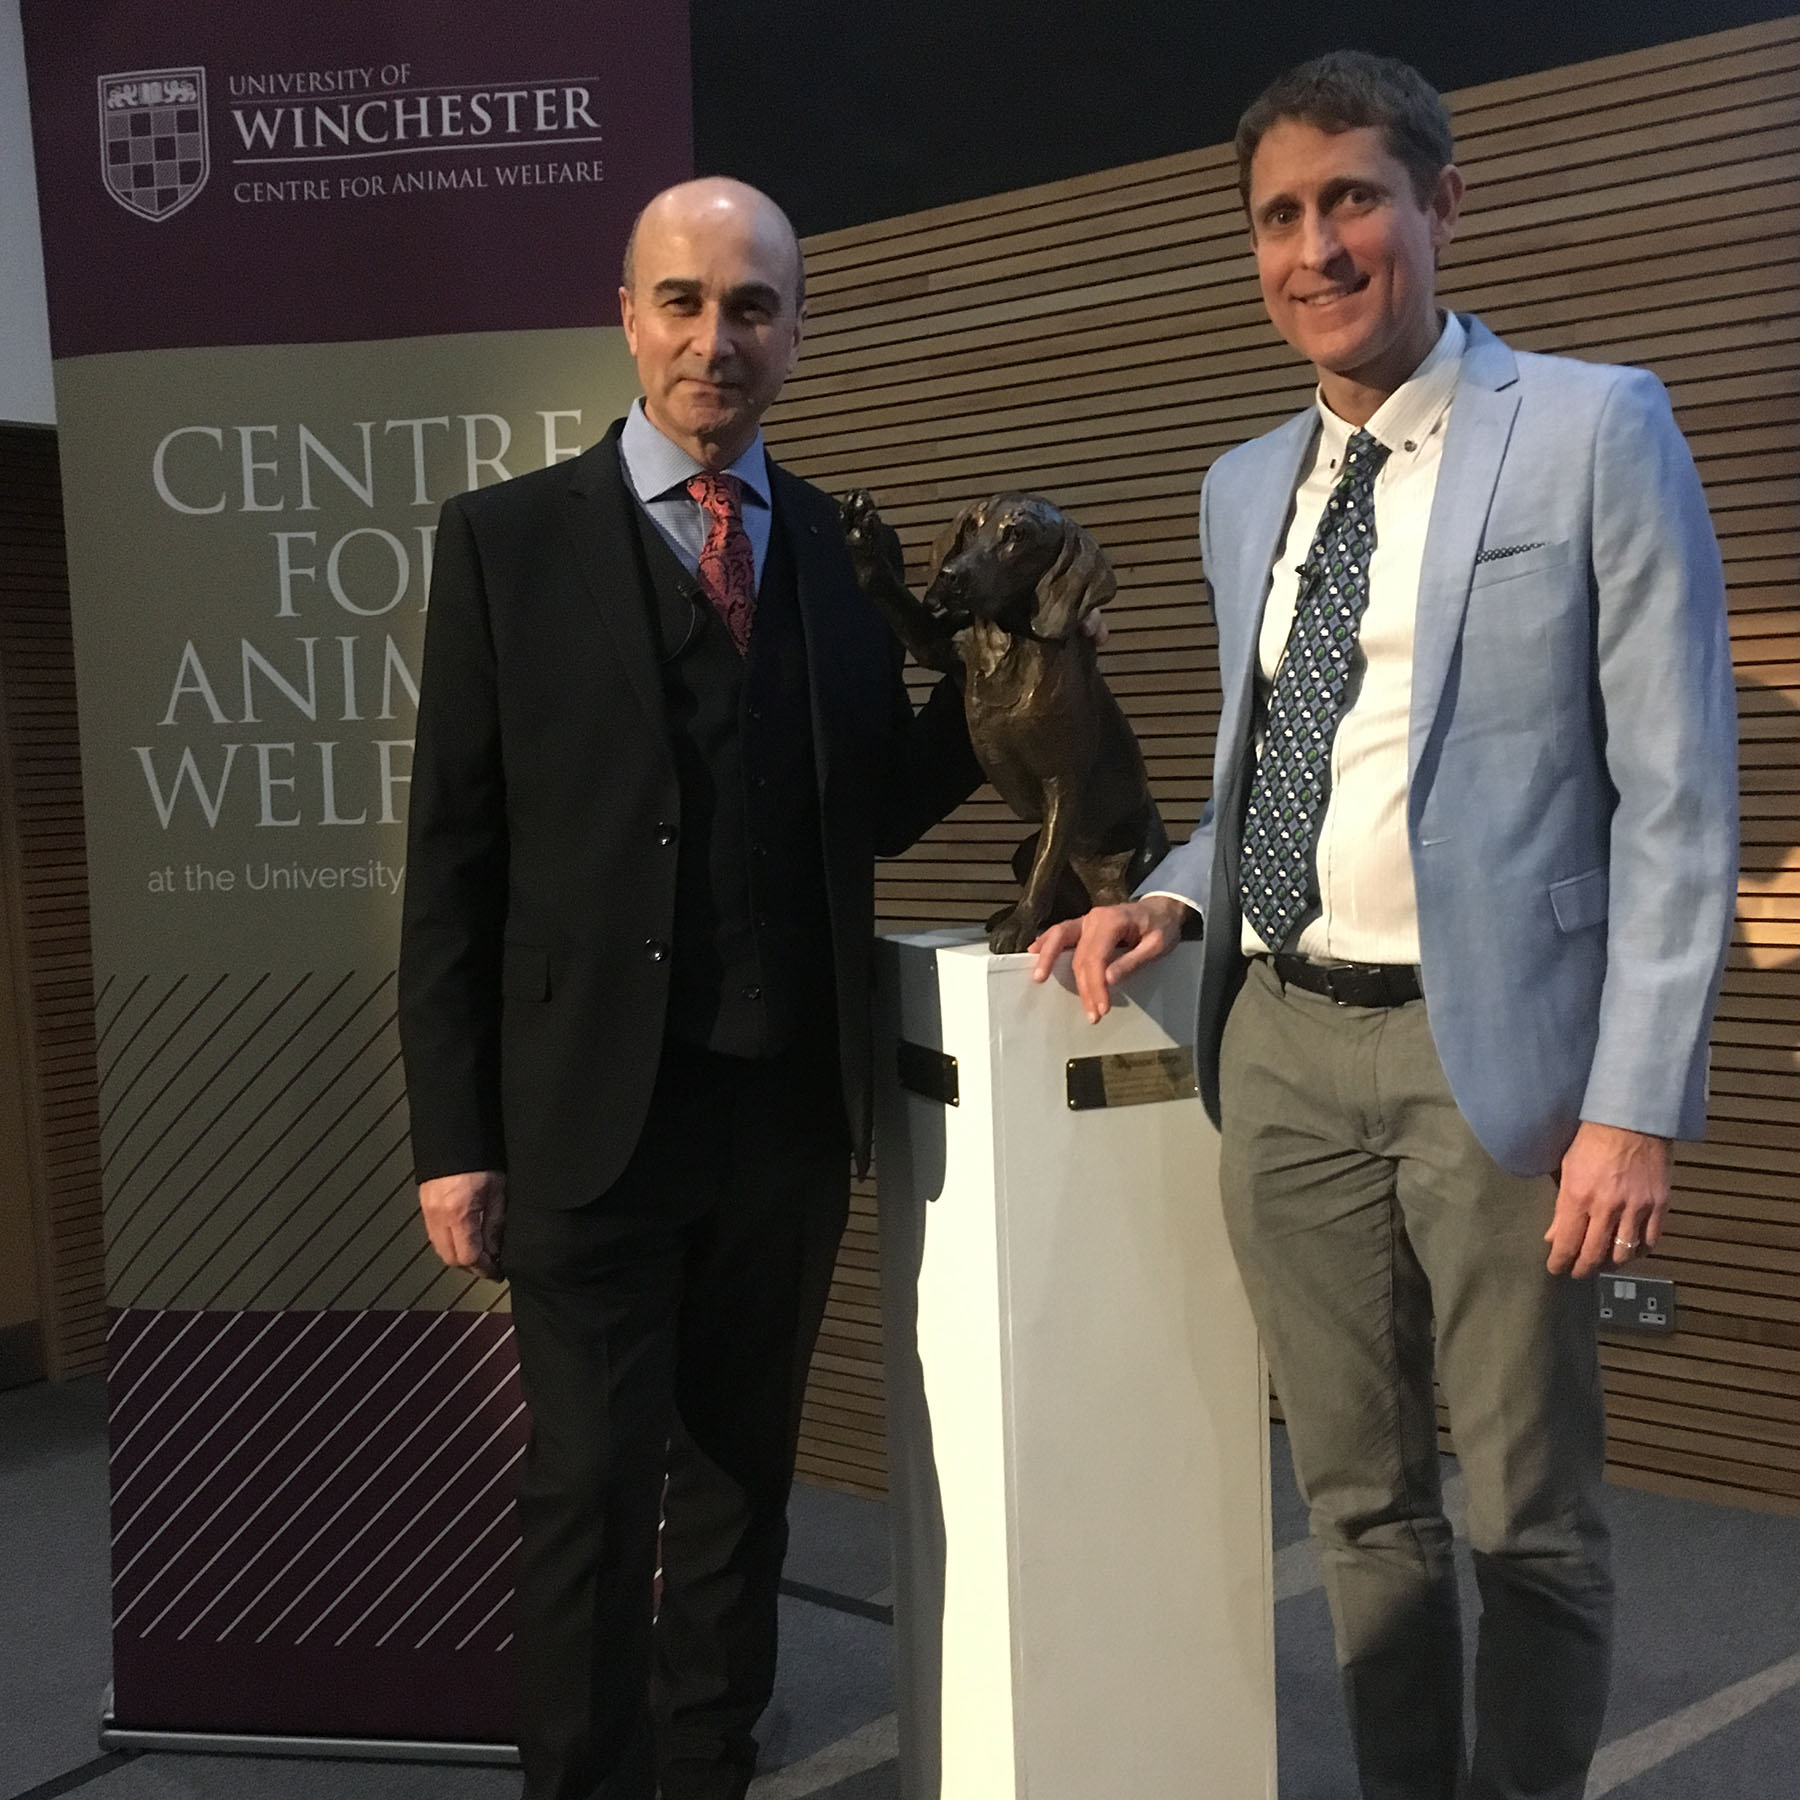 Animal qwelfare at Winchester: Compassion in World Farming CEO Phil Lymbery and Centre for Animal Welfare Director Andrew Knight by the CAW mascotte, a bronze dog with raised paw.